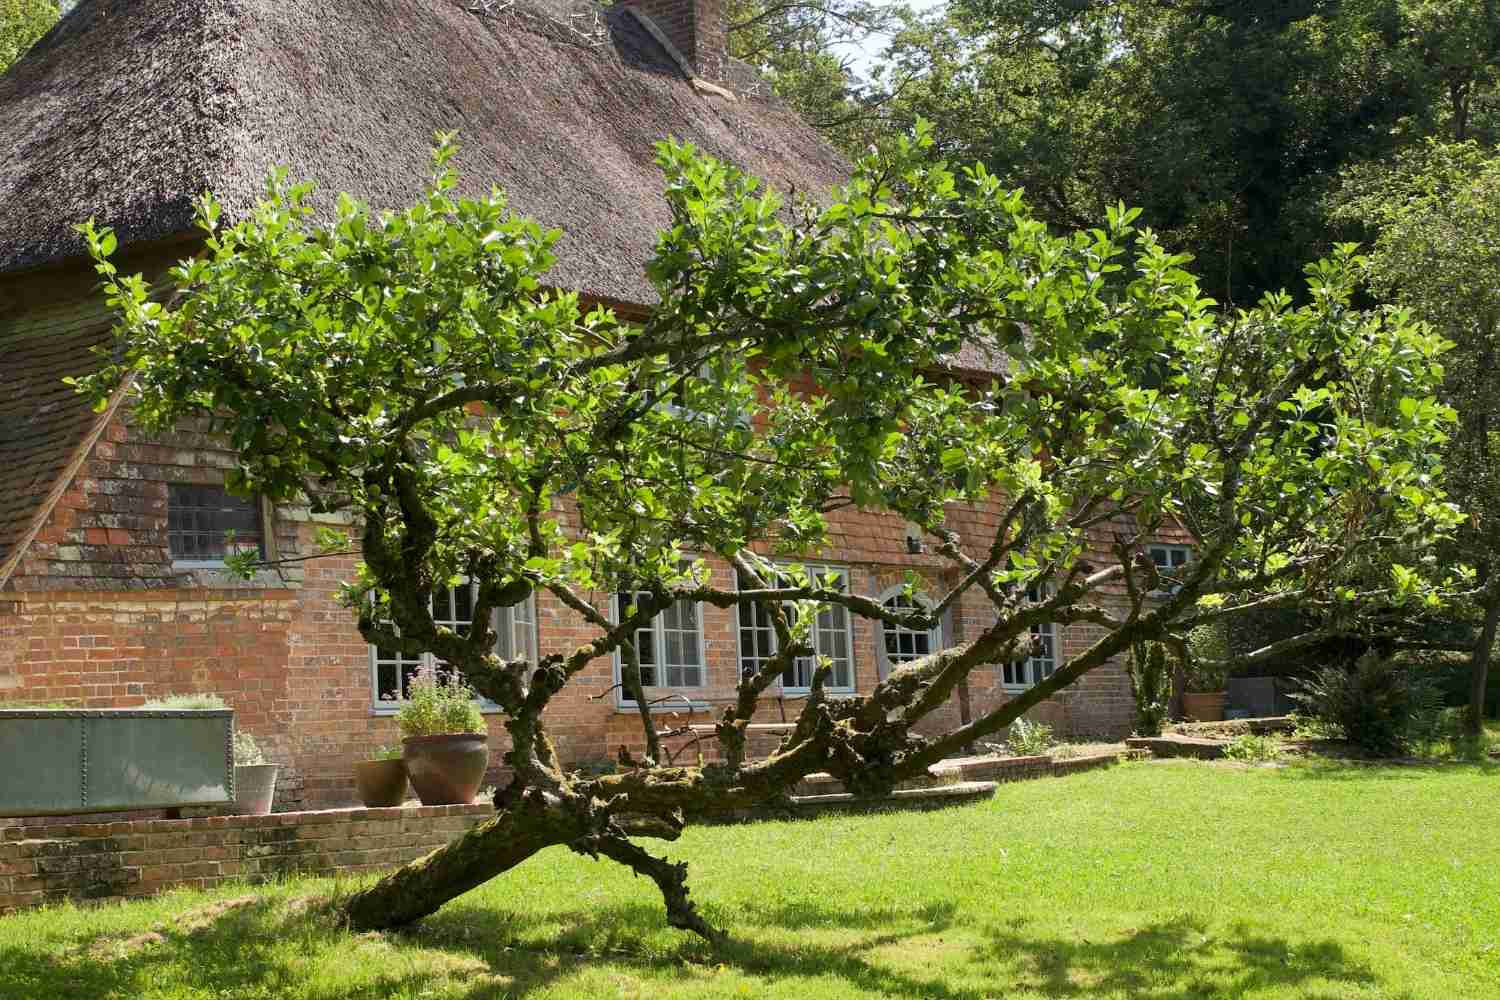 A crooked apple tree in the garden